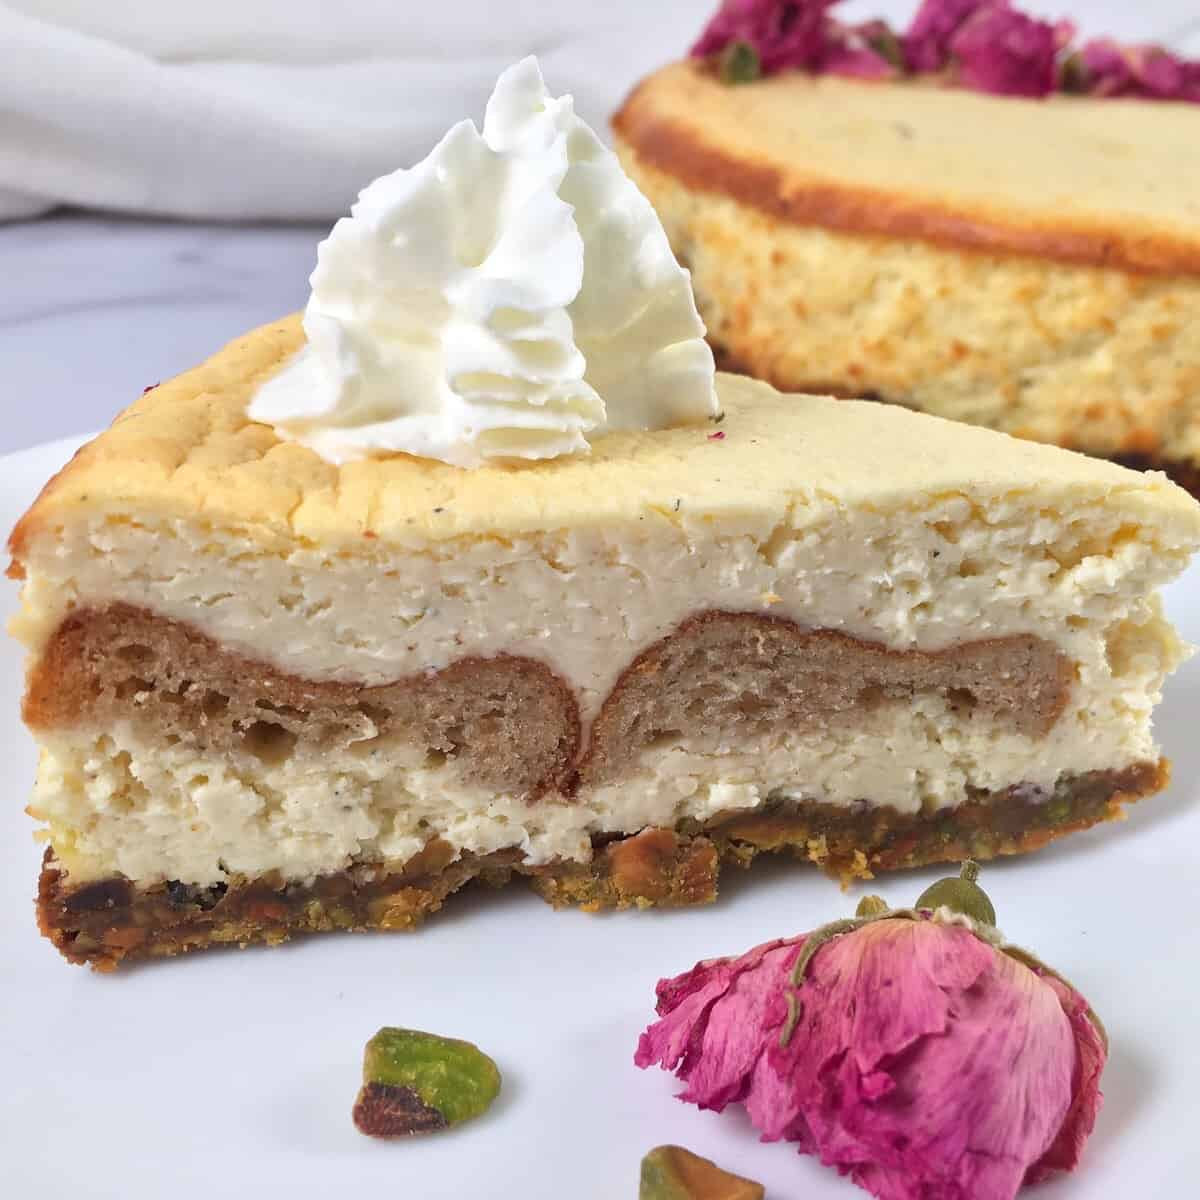 sliced cheesecake with rose blossoms